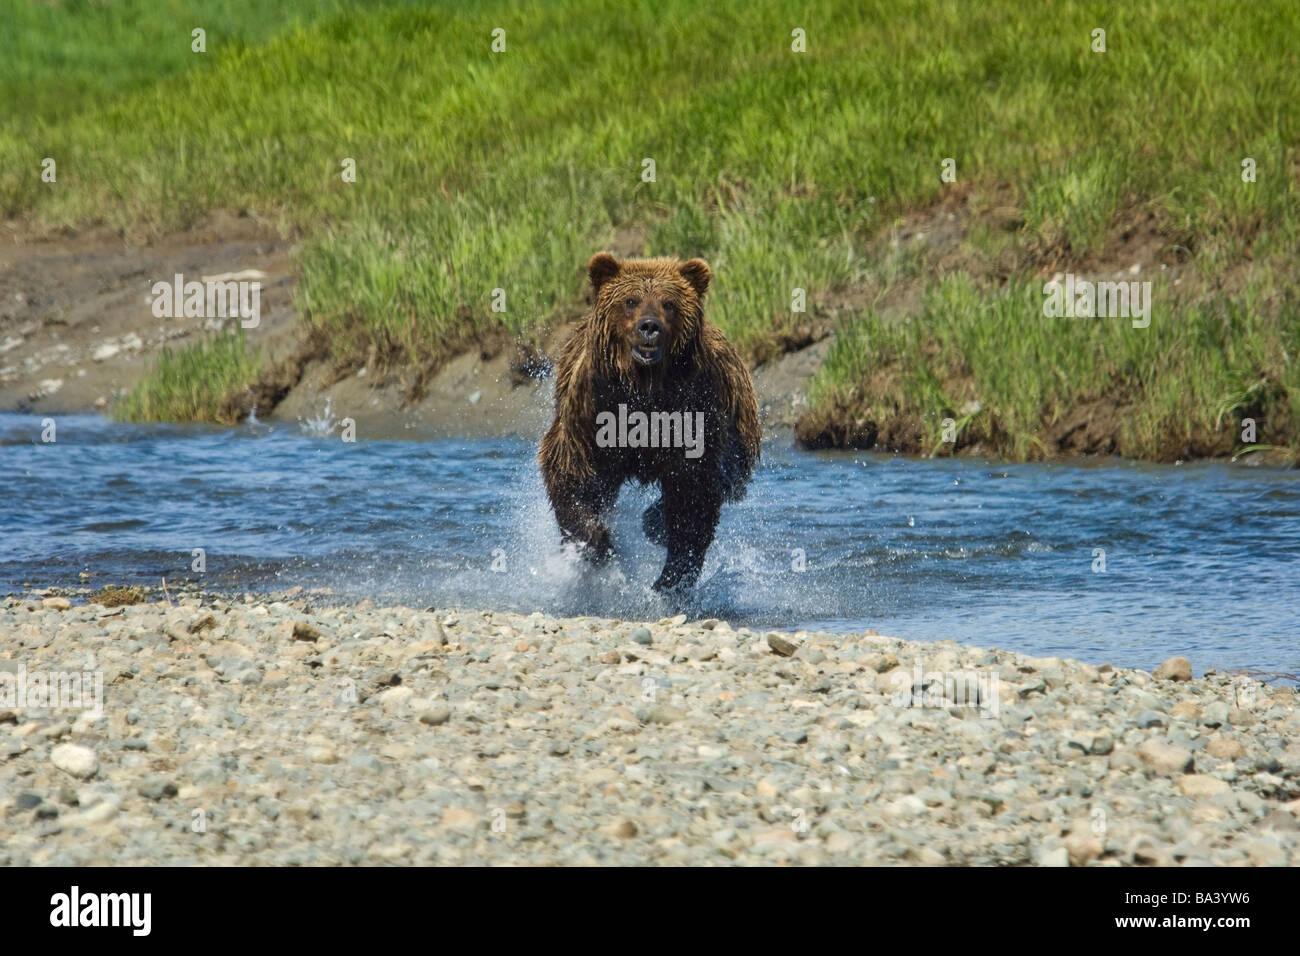 A Brown Bear Charges through the water at Mikfik Creek during Summer in Southwest Alaska. Stock Photo